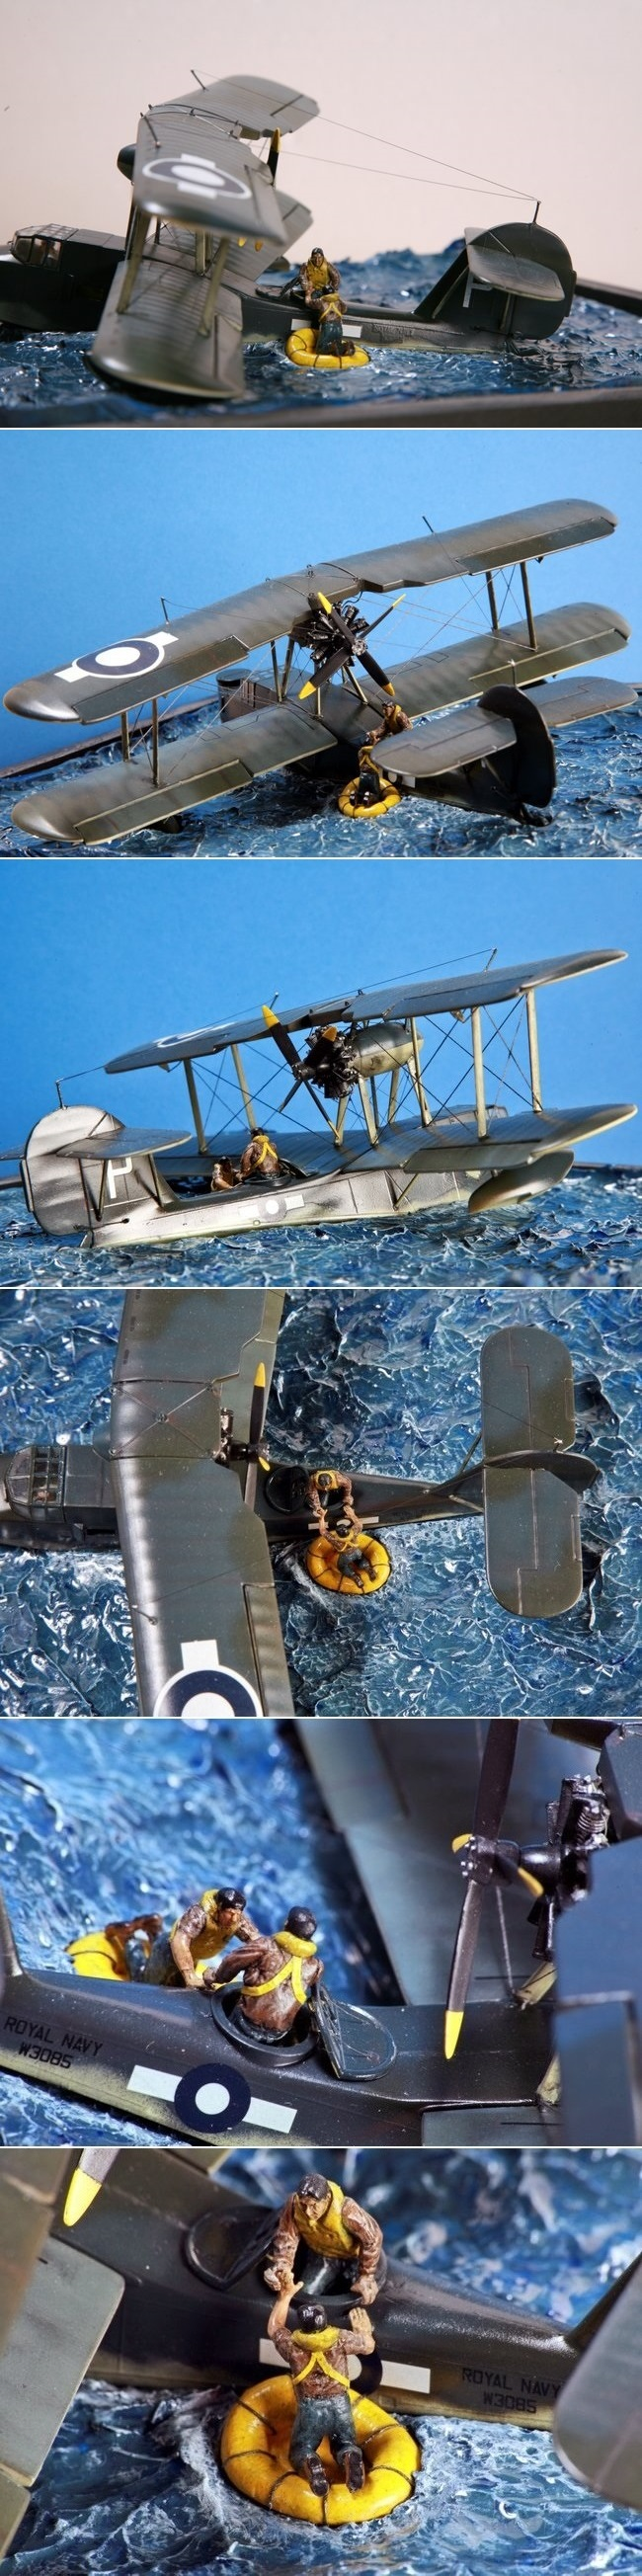 "1/72 Revell/Matchbox Walrus MK.I ""DOWN IN THE DRINK"" by Andrea Cittadini http://www.arcair.com/Gal8/7901-8000/gal7945-Walrus-Cittadini/00.shtm"